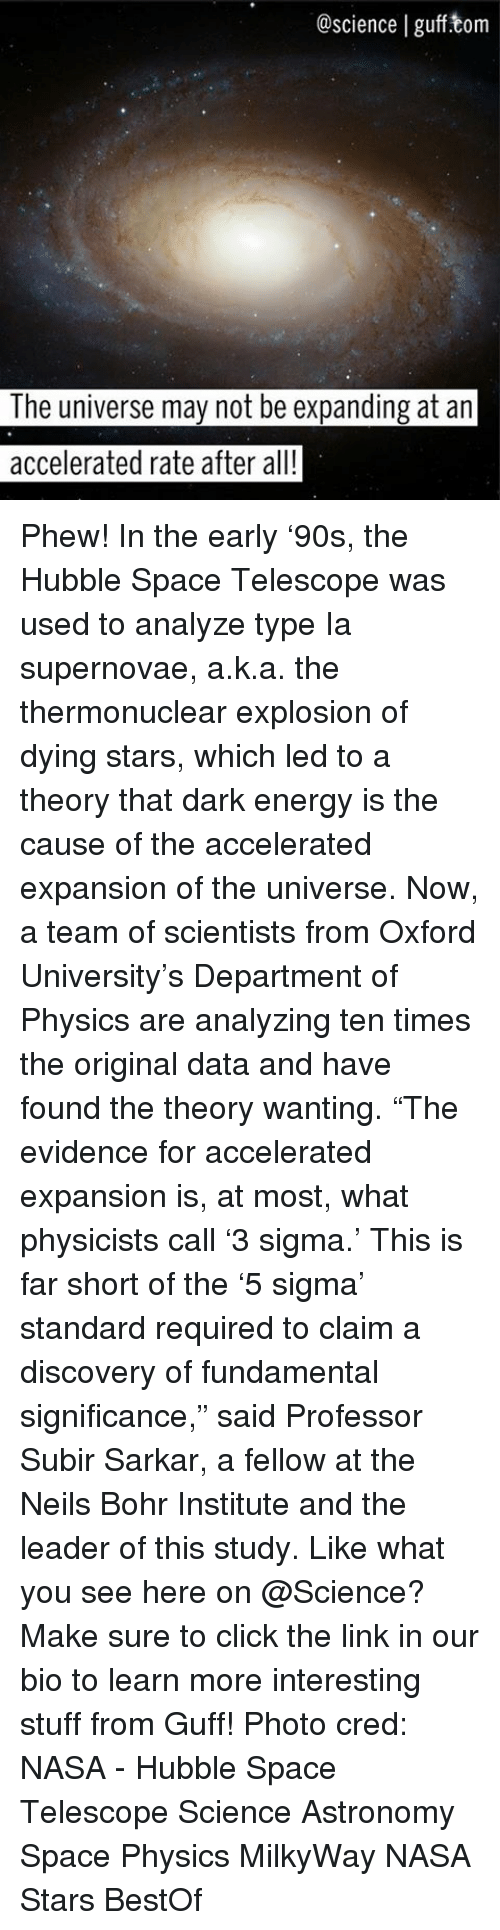 """Energy, Memes, and Nasa: @science I gufftom  The universe may not be expanding at an  accelerated rate after all! Phew! In the early '90s, the Hubble Space Telescope was used to analyze type Ia supernovae, a.k.a. the thermonuclear explosion of dying stars, which led to a theory that dark energy is the cause of the accelerated expansion of the universe. Now, a team of scientists from Oxford University's Department of Physics are analyzing ten times the original data and have found the theory wanting. """"The evidence for accelerated expansion is, at most, what physicists call '3 sigma.' This is far short of the '5 sigma' standard required to claim a discovery of fundamental significance,"""" said Professor Subir Sarkar, a fellow at the Neils Bohr Institute and the leader of this study. Like what you see here on @Science? Make sure to click the link in our bio to learn more interesting stuff from Guff! Photo cred: NASA - Hubble Space Telescope Science Astronomy Space Physics MilkyWay NASA Stars BestOf"""